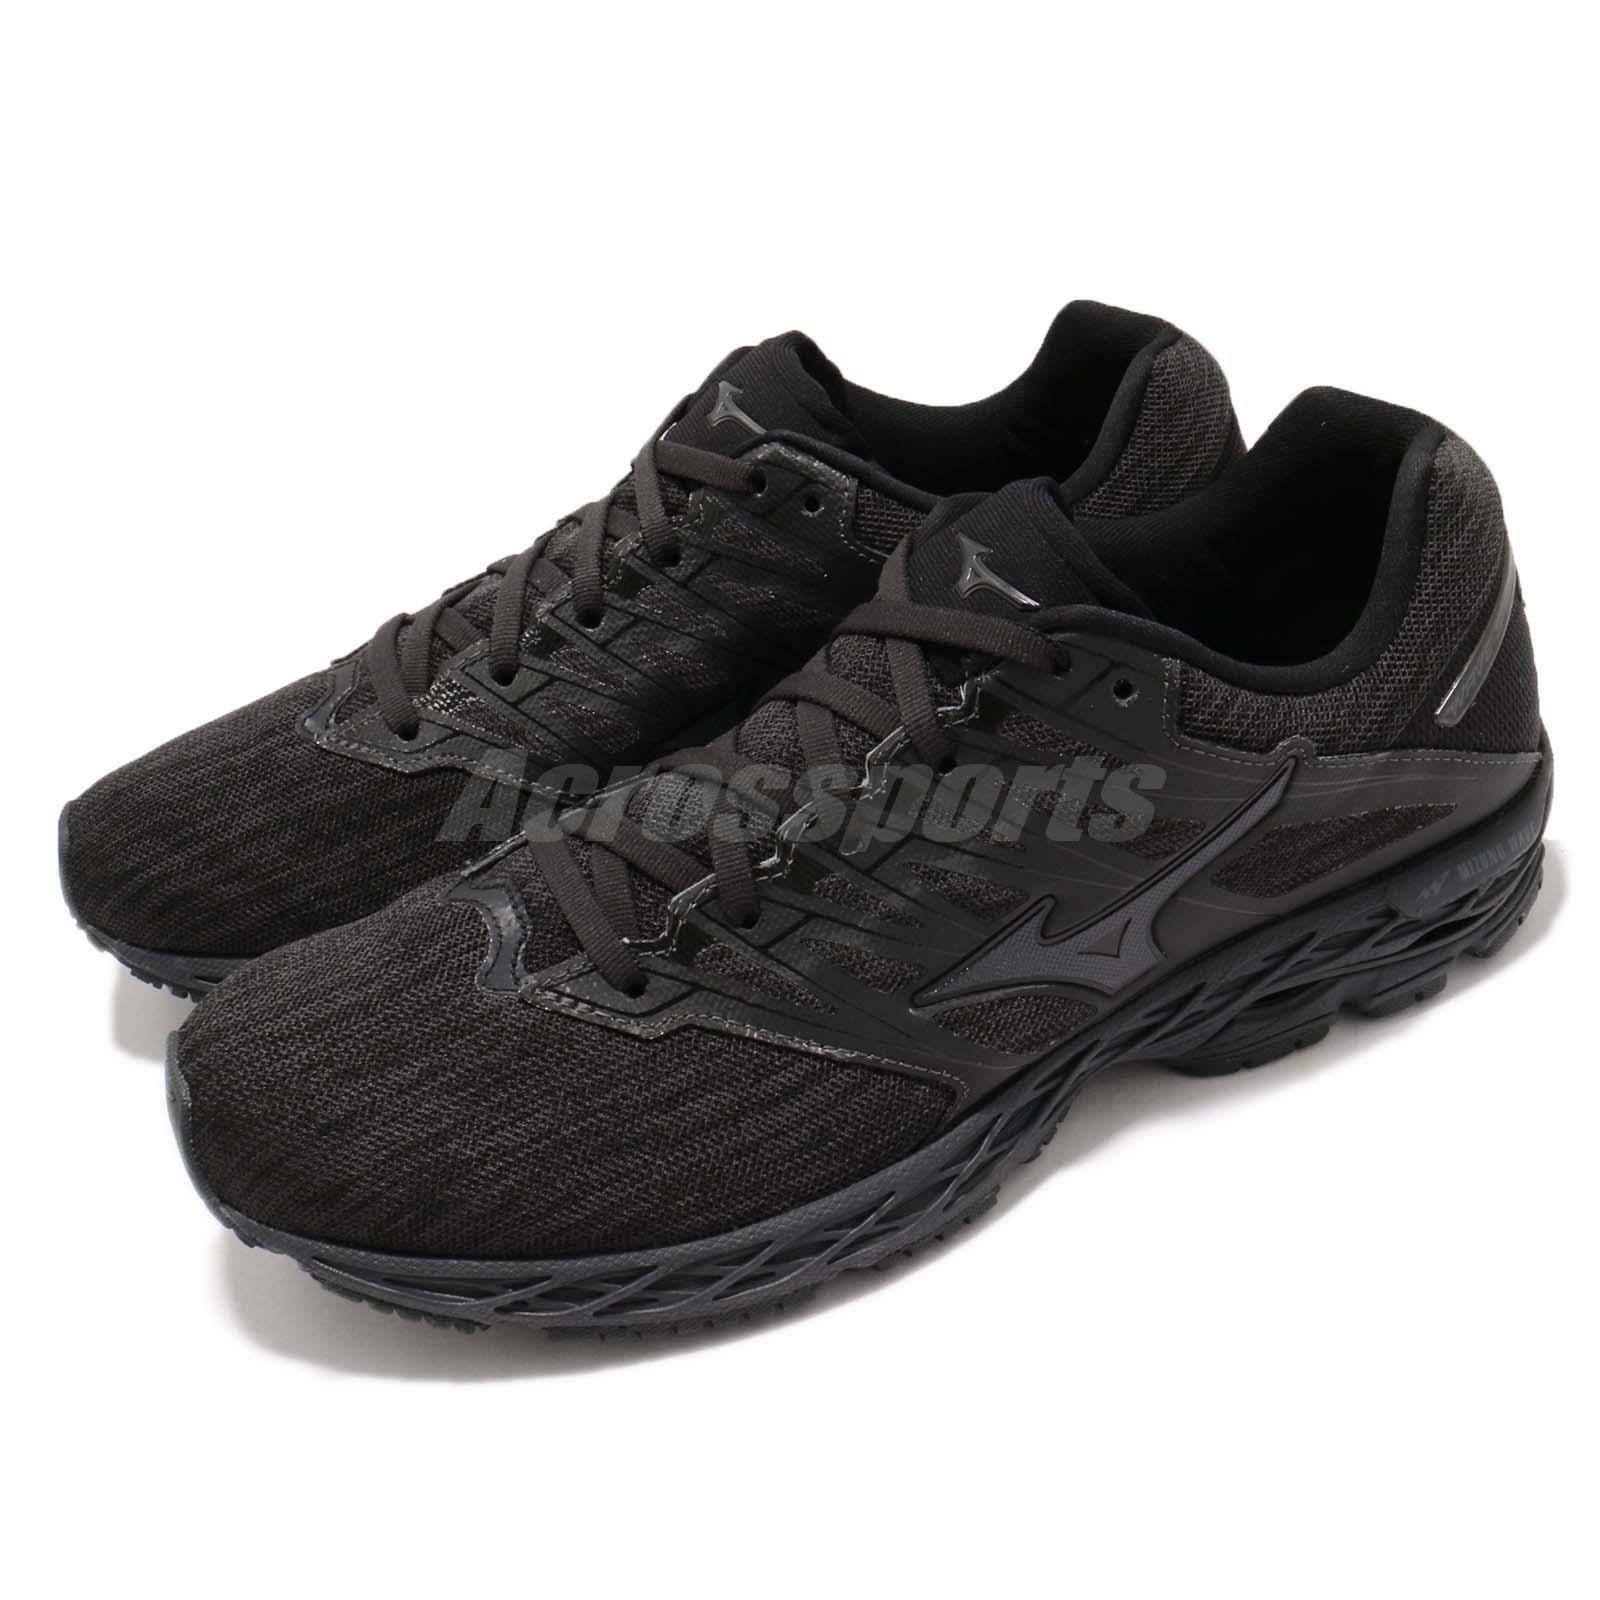 buy popular 34fb4 d7f96 Mizuno Wave Wave Wave Shadow 2 Black Running Training Shoes Sneakers  J1GC1830-51 7c42d0